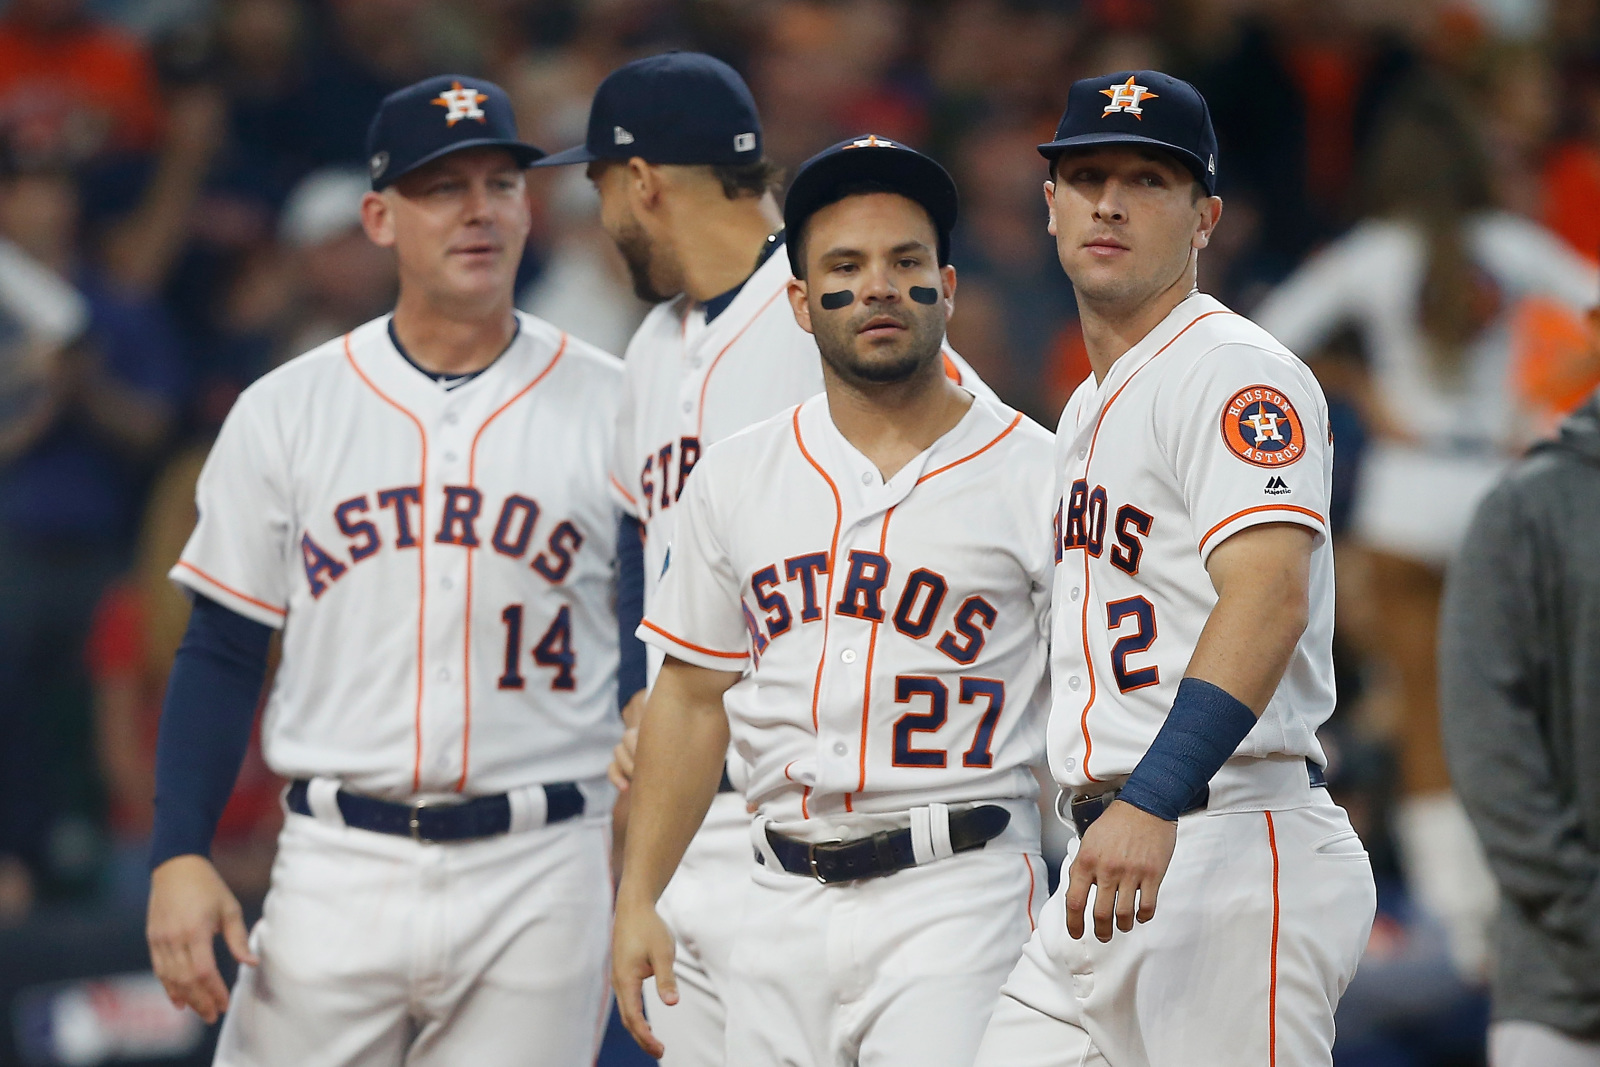 Astros: Opening day 25-man roster announced for 2019